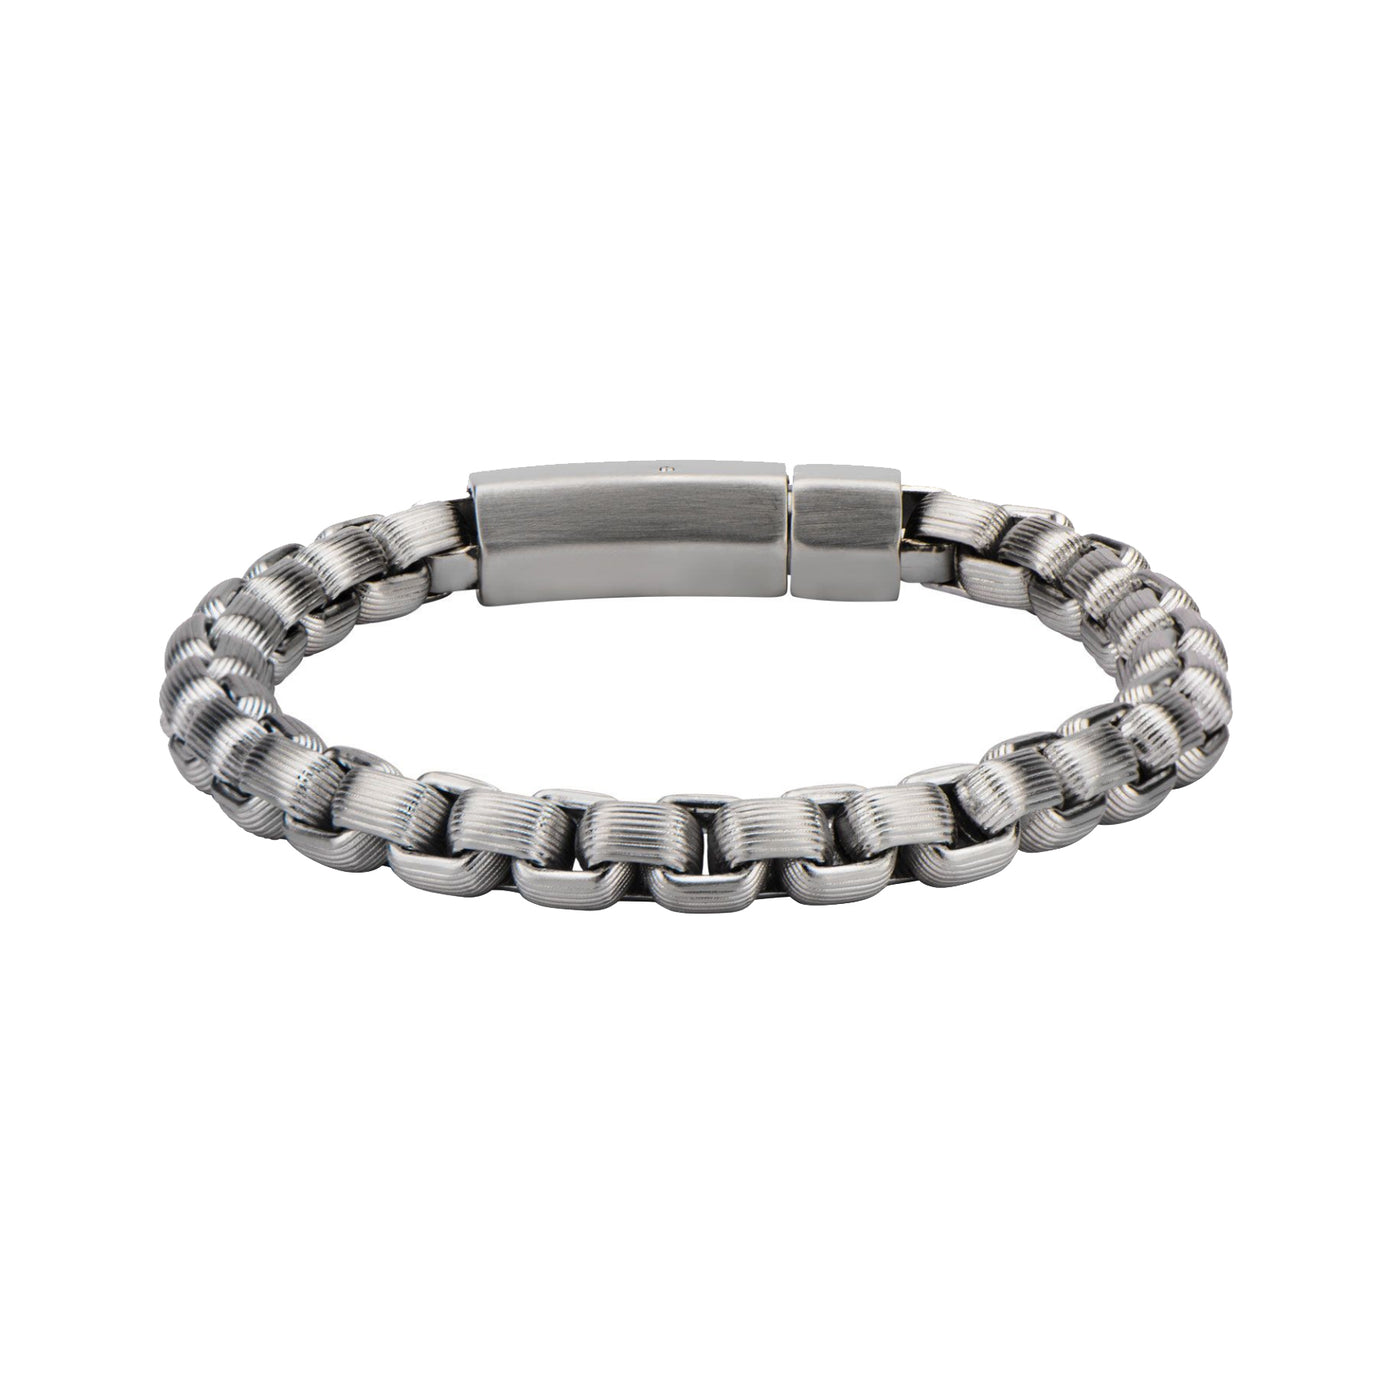 "Inox Jewelry Steel Grove Line Bold Box Chain 8.5"" Bracelet BR5026"